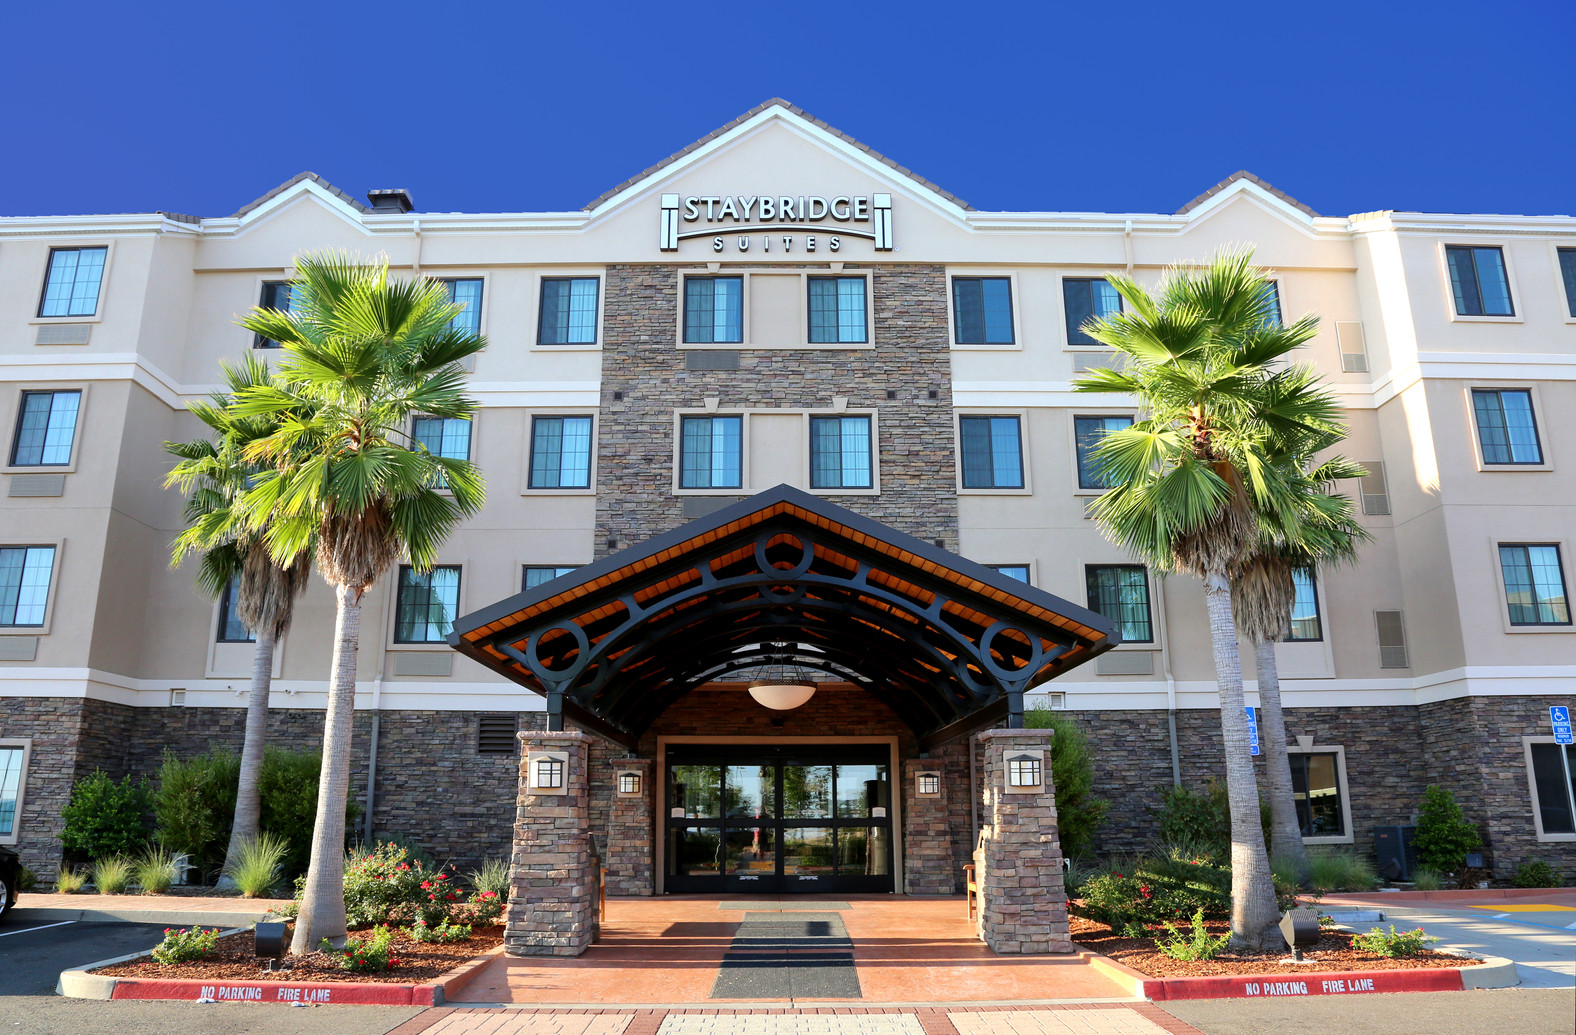 staybridge suites-folsom_1.jpg